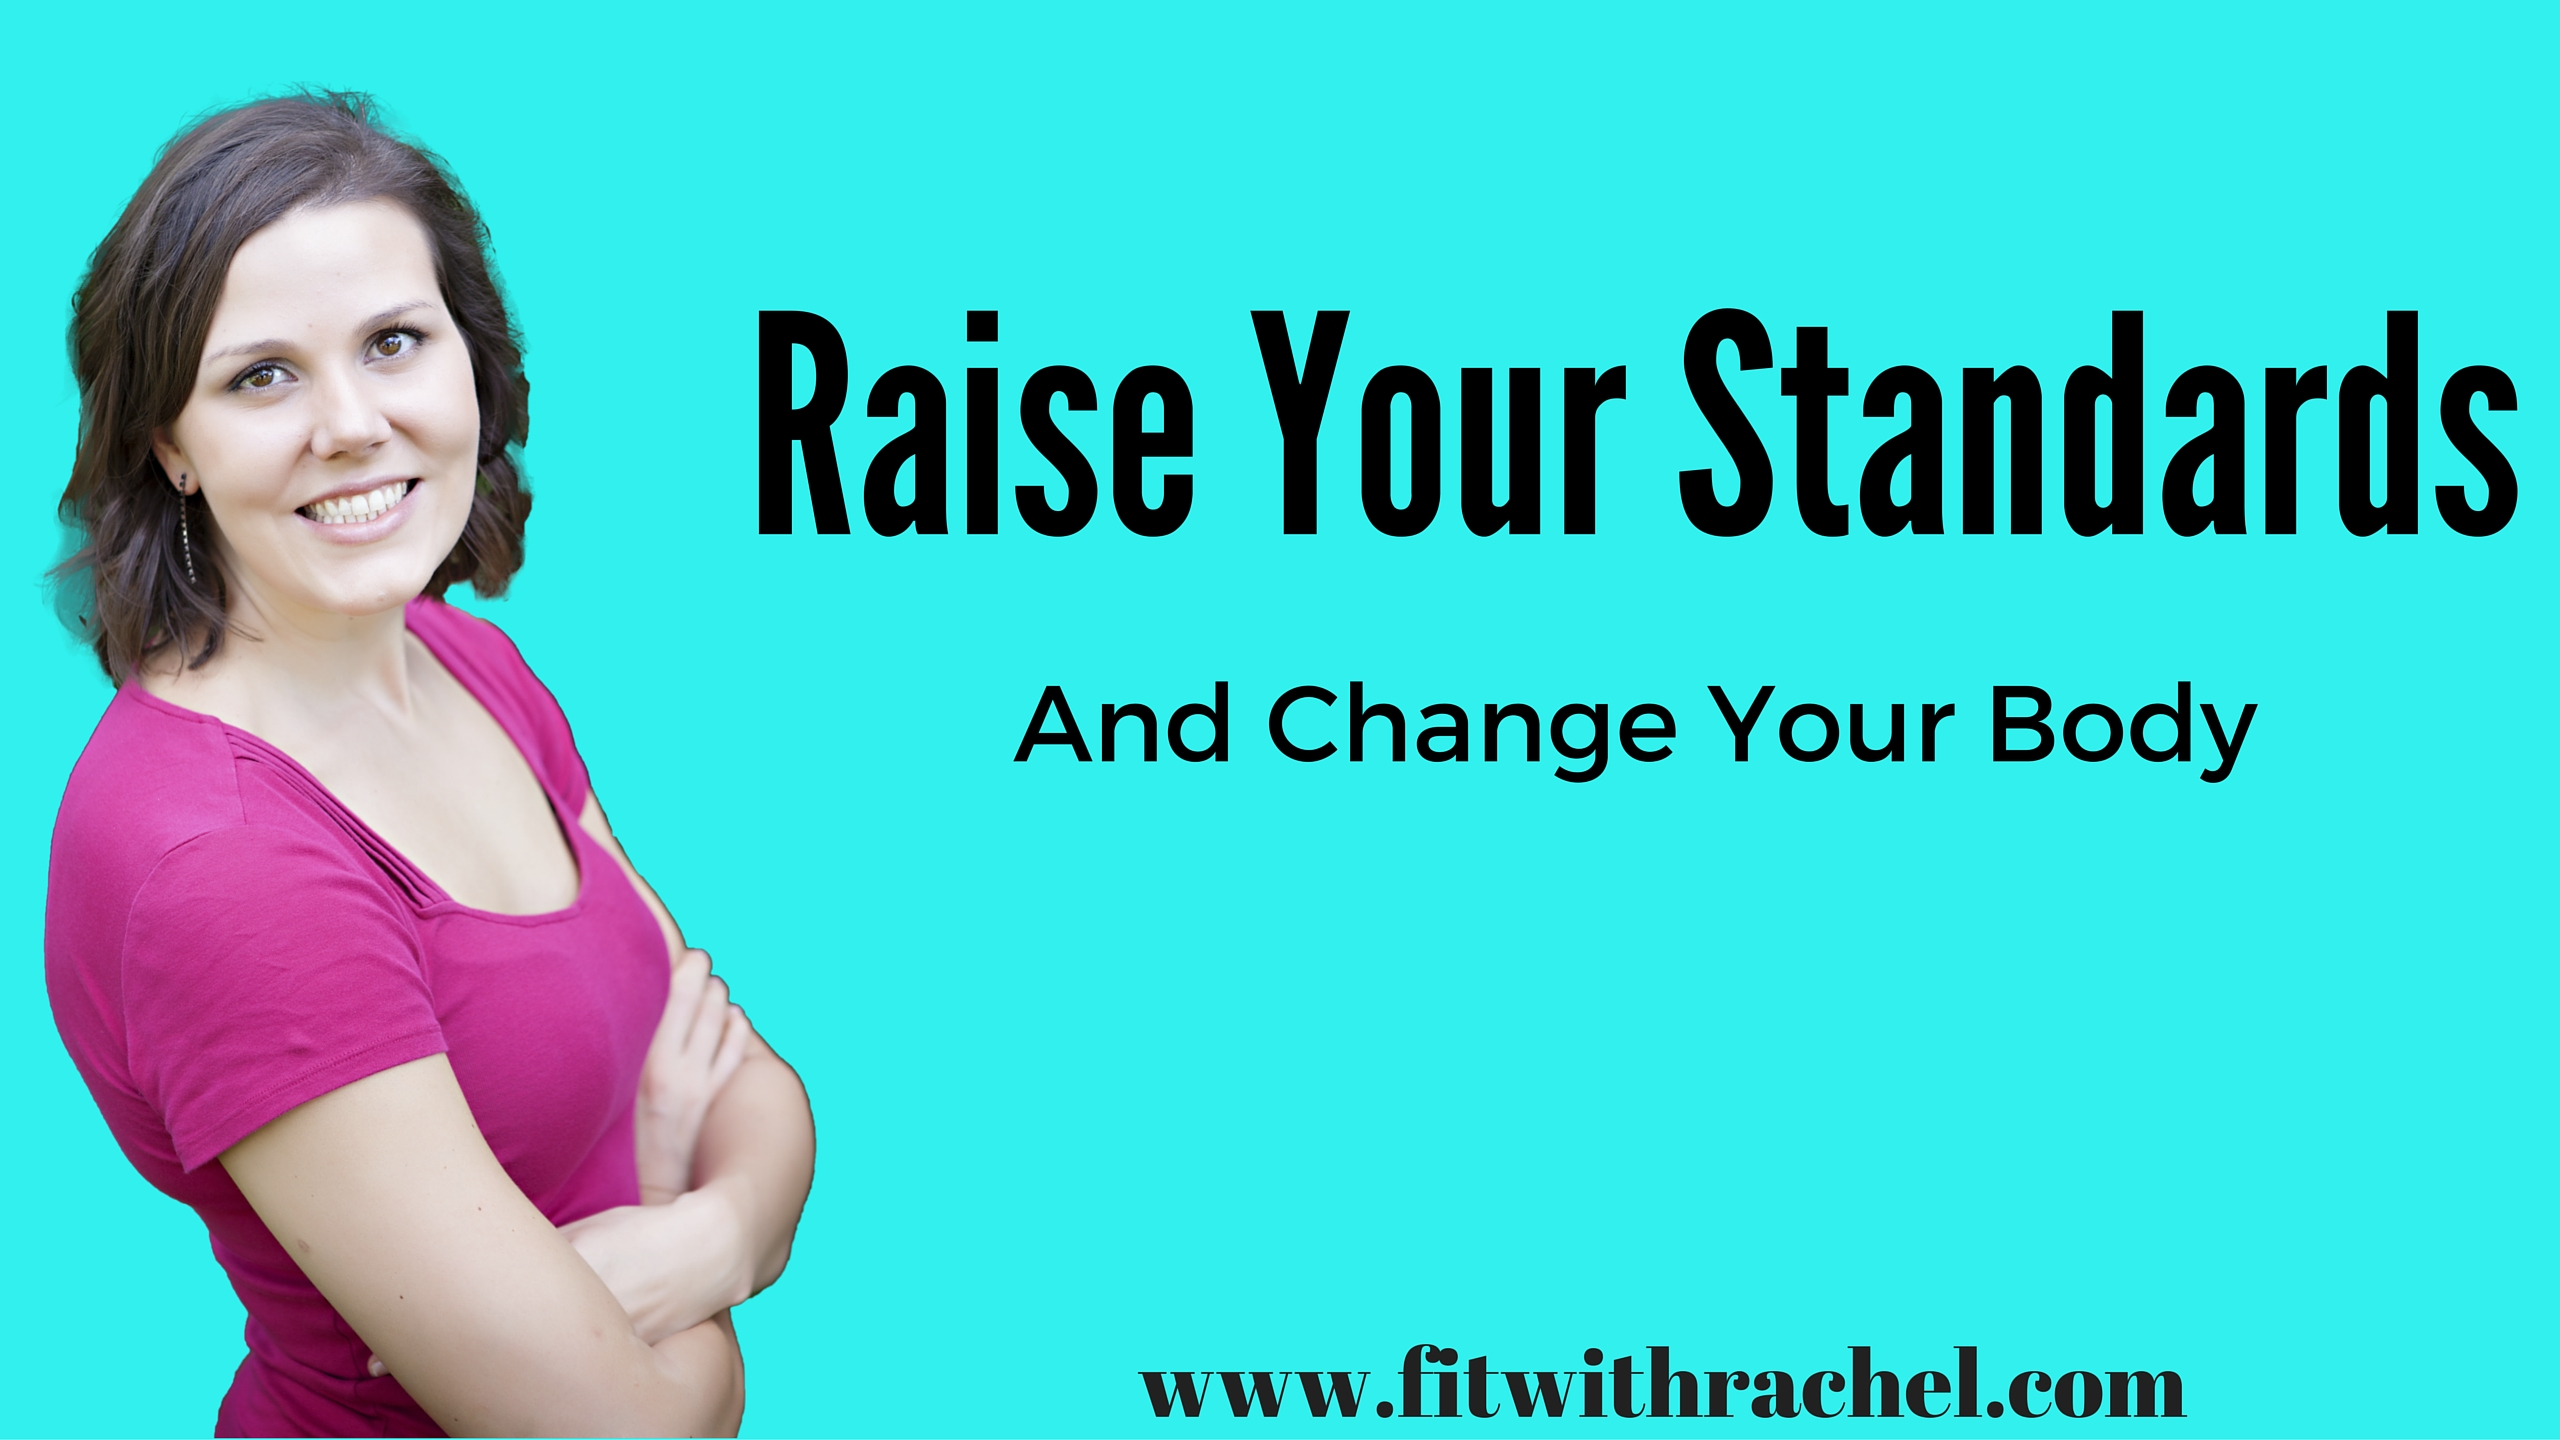 Raise Your Standards (and change your body!)